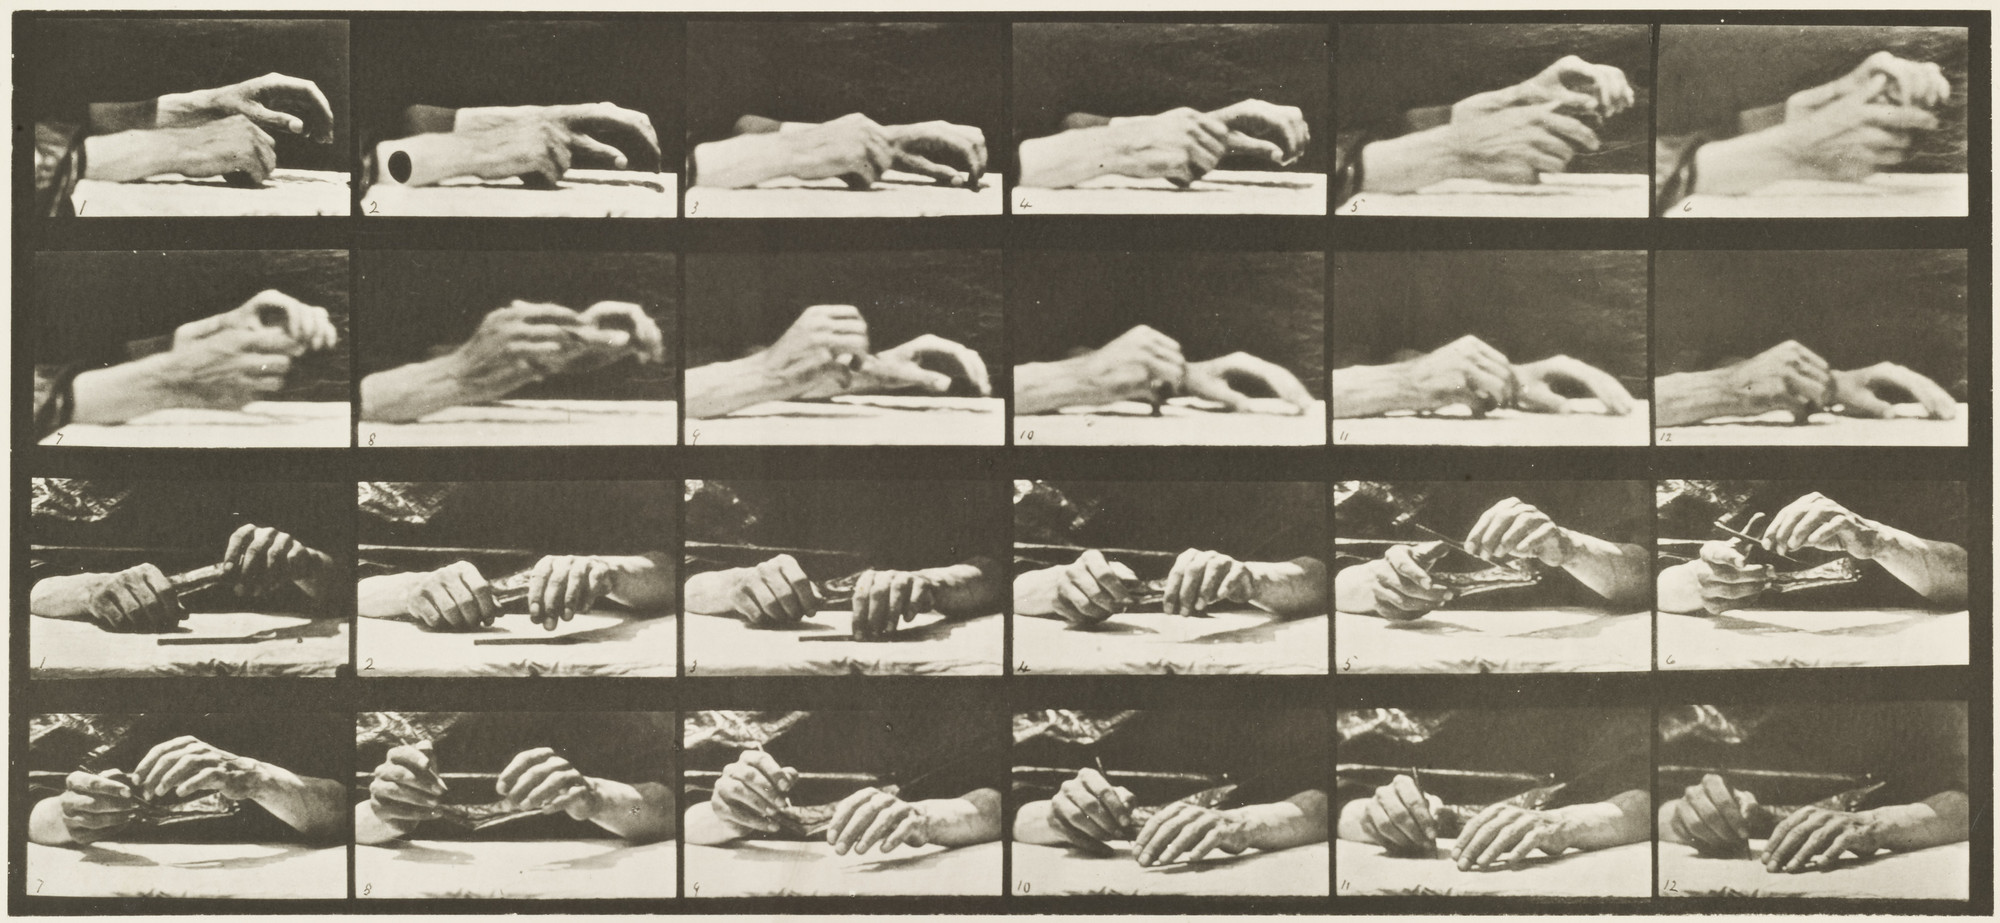 Eadweard J. Muybridge. Movement of the Hand, Hand Changing Pencil: Plate 536 from Animal Locomotion. 1884-86